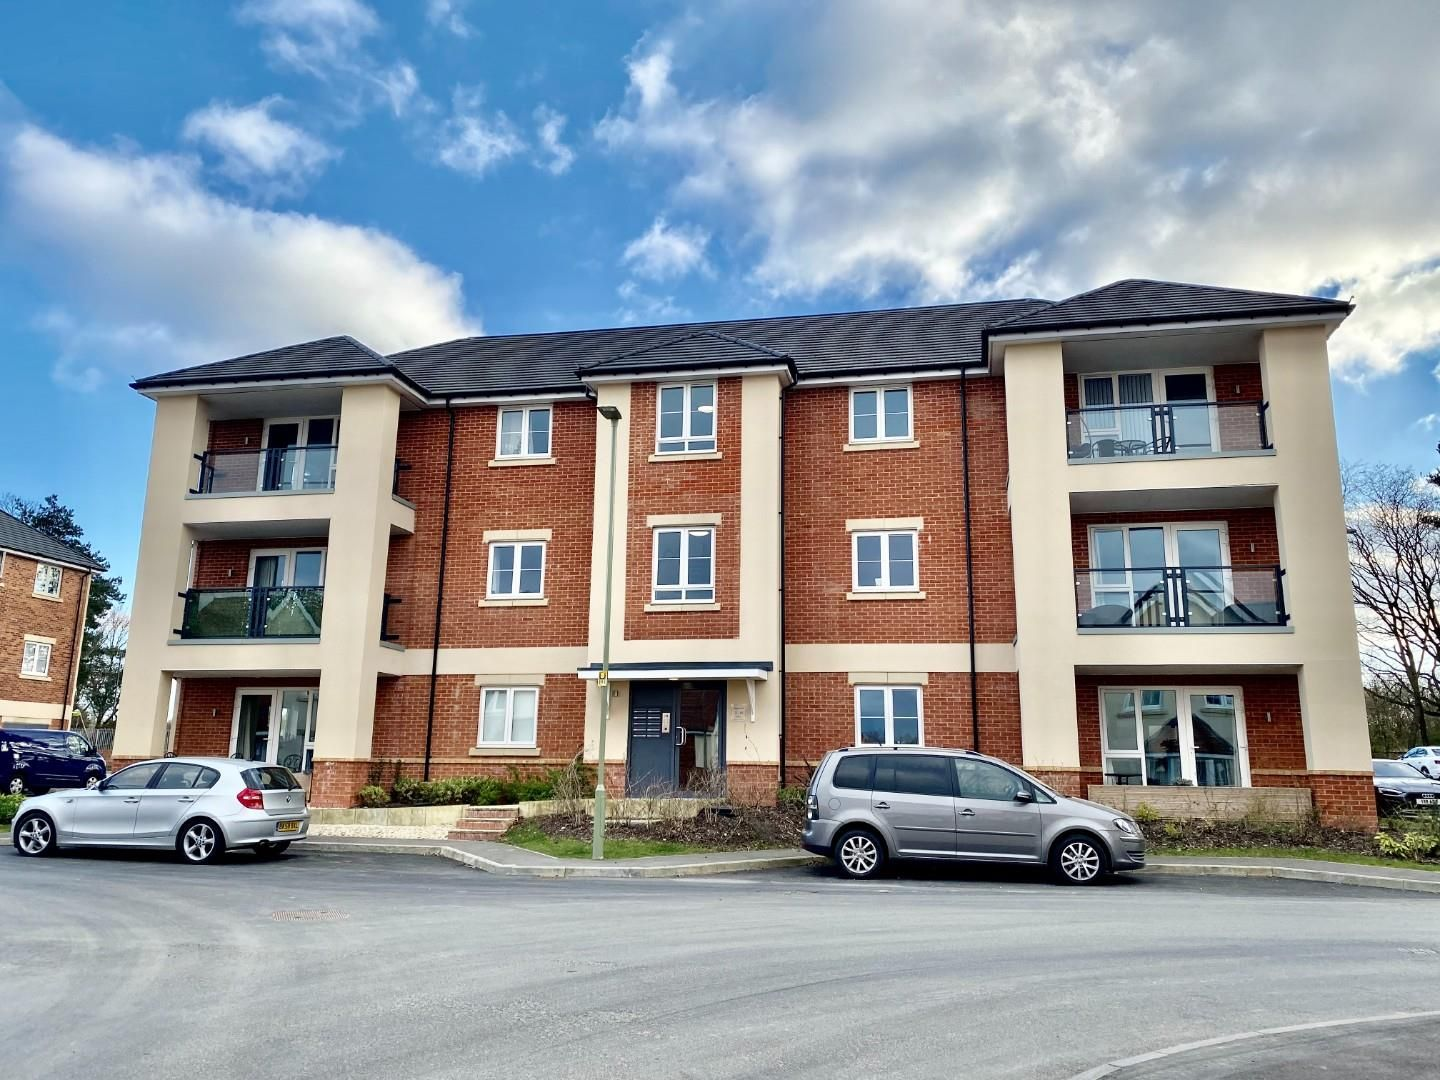 2 bed apartment for sale in Blackwater, GU17